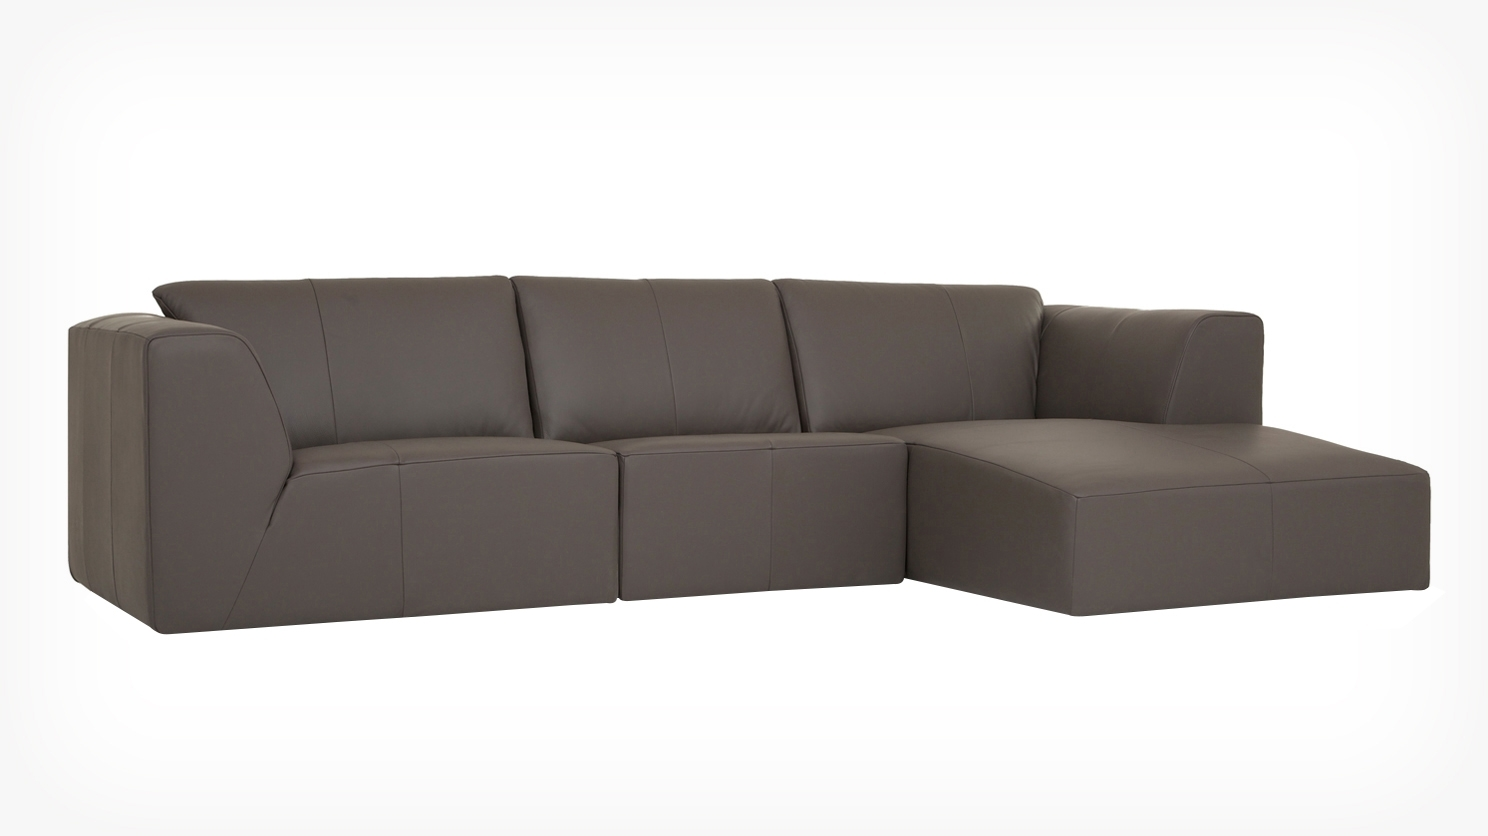 Eq3 | Morten 3 Piece Sectional Sofa With Chaise – Leather With Regard To Eq3 Sectional Sofas (View 4 of 10)